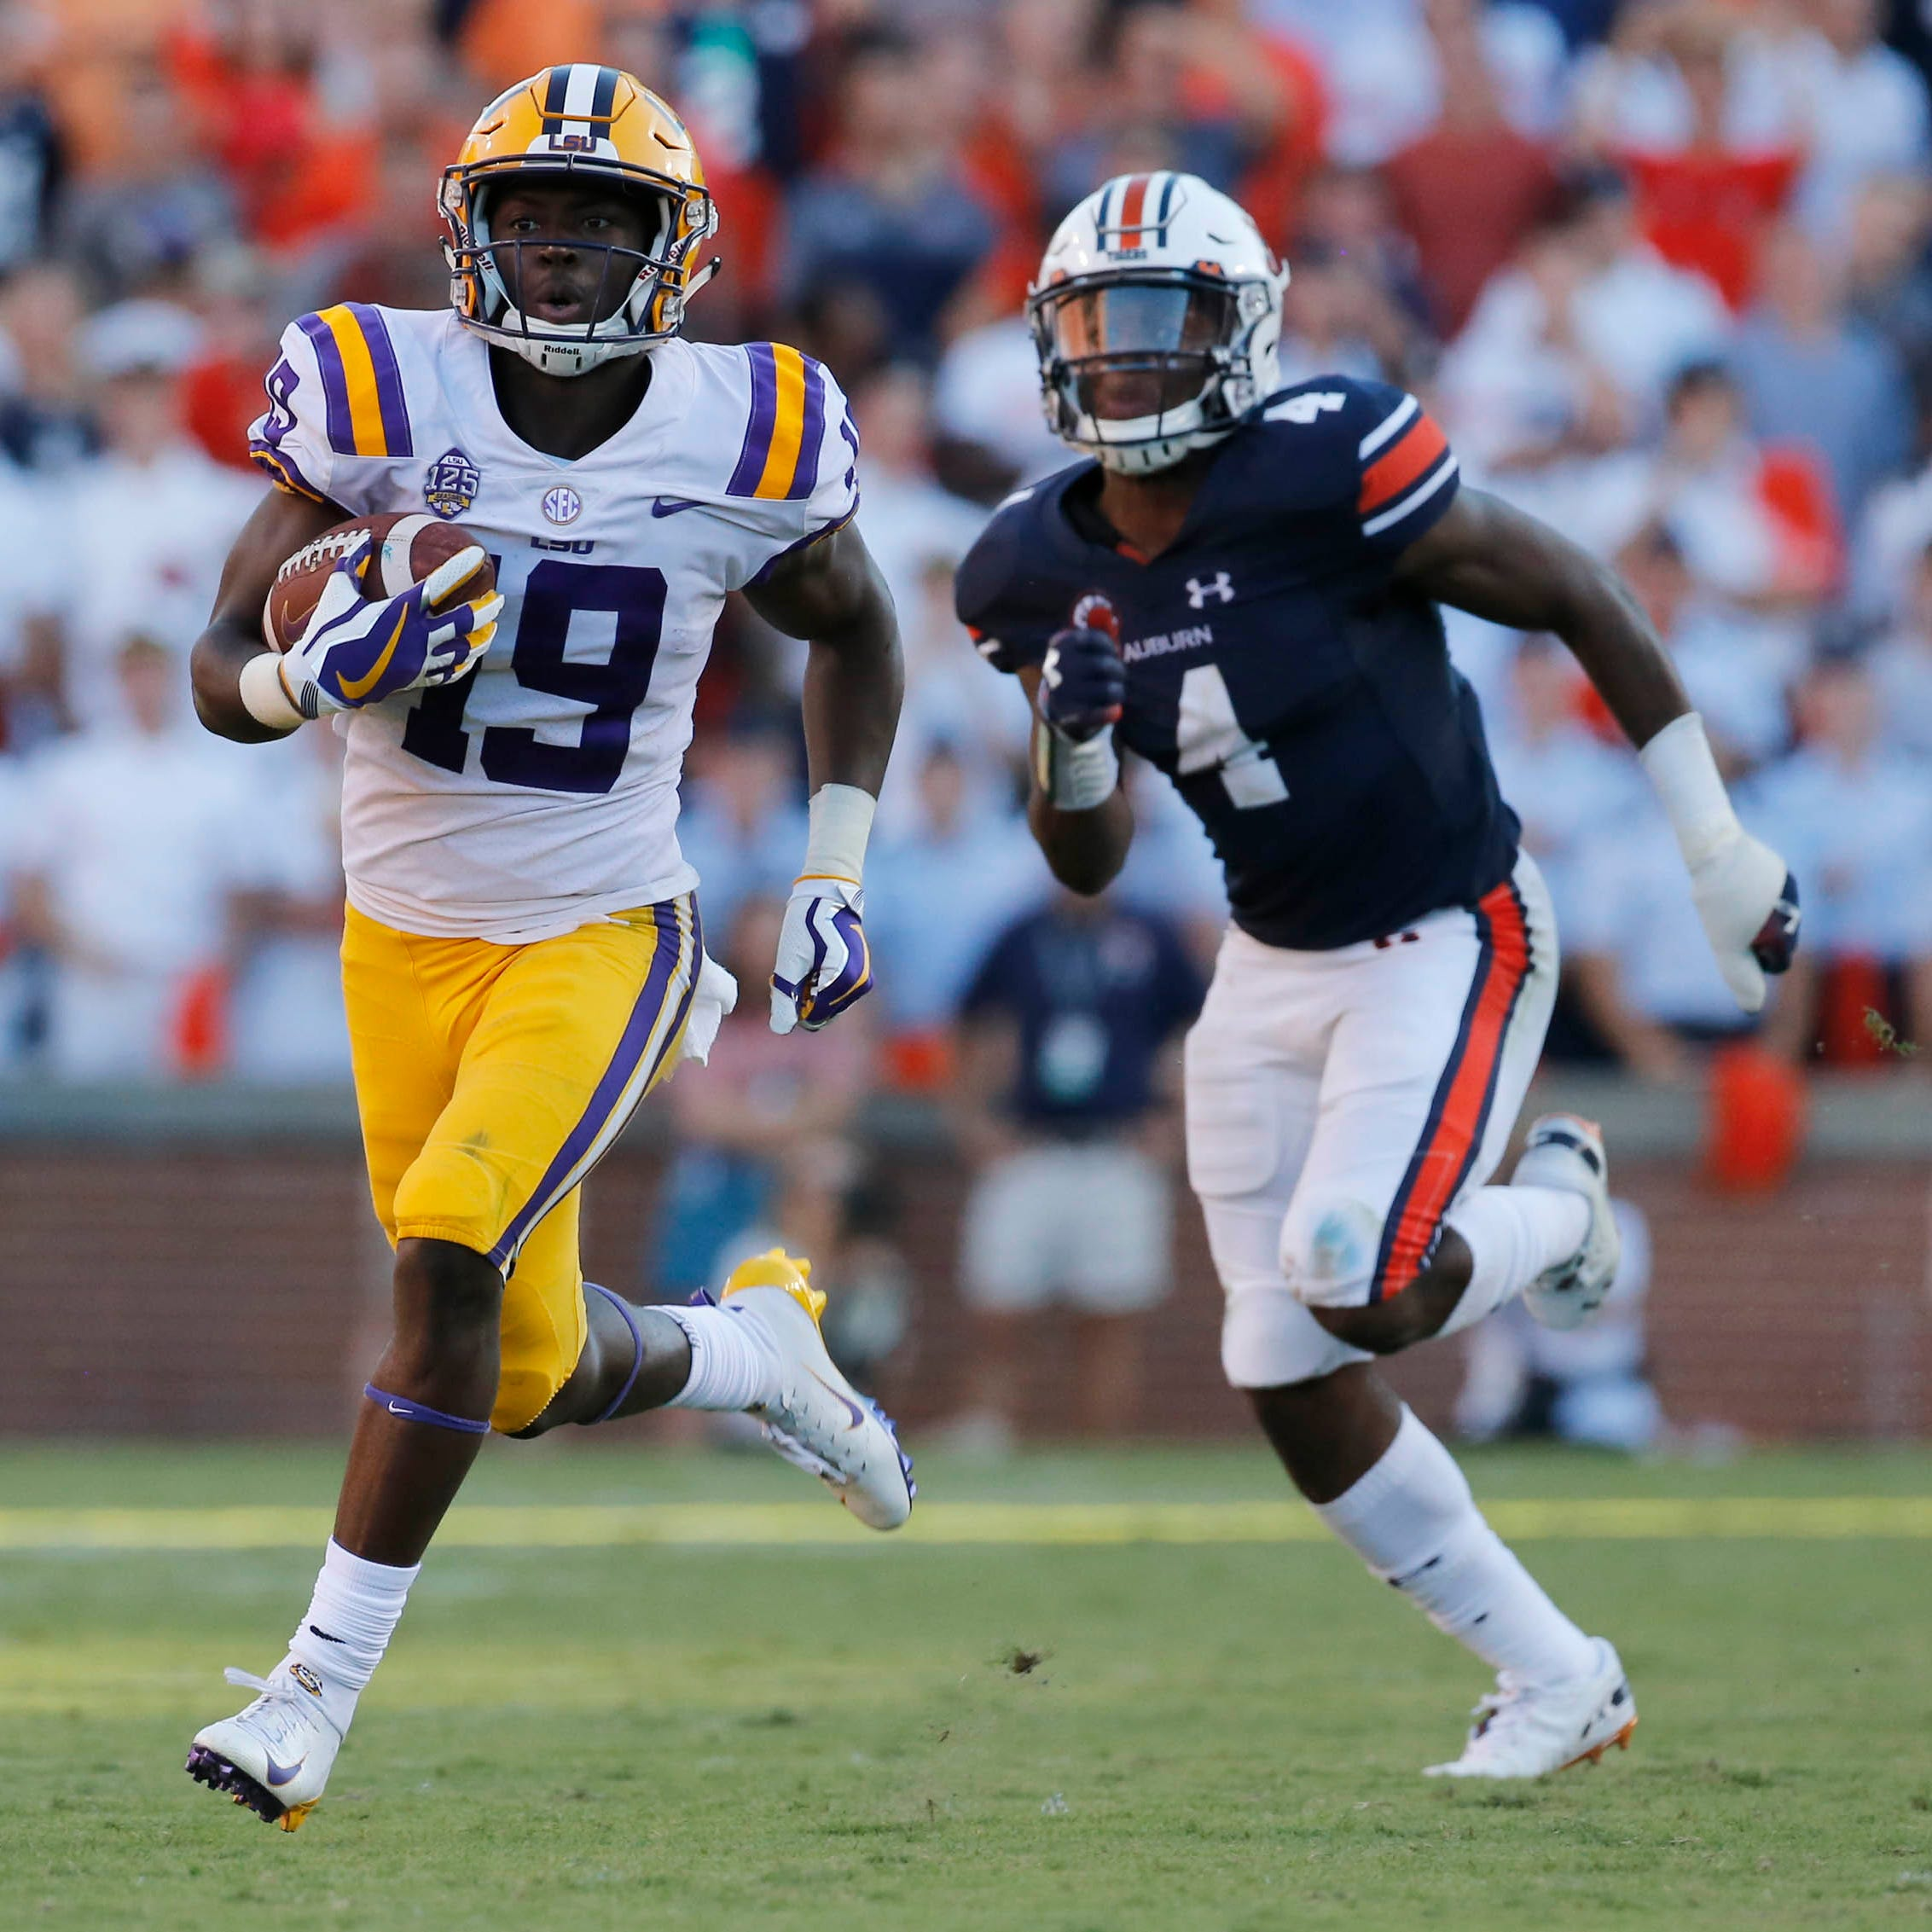 Auburn folds to LSU again in yet another heart-breaker